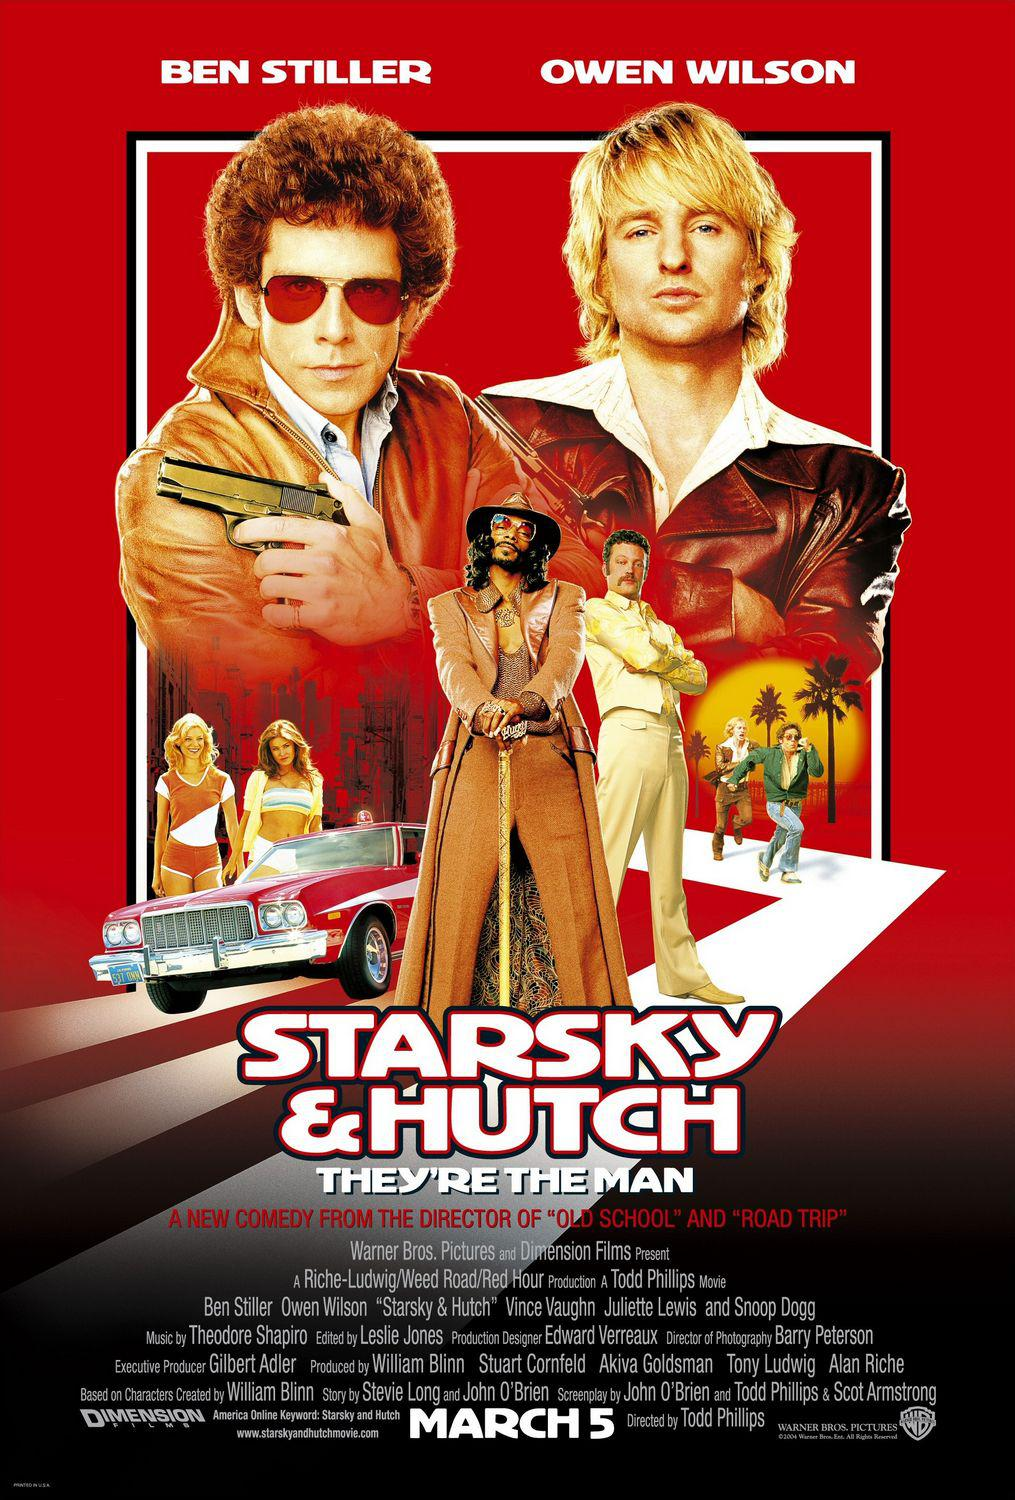 Starsky and Hutch ... film con Ben Stiller e Owen Wilson - They're the man. A new comedy.